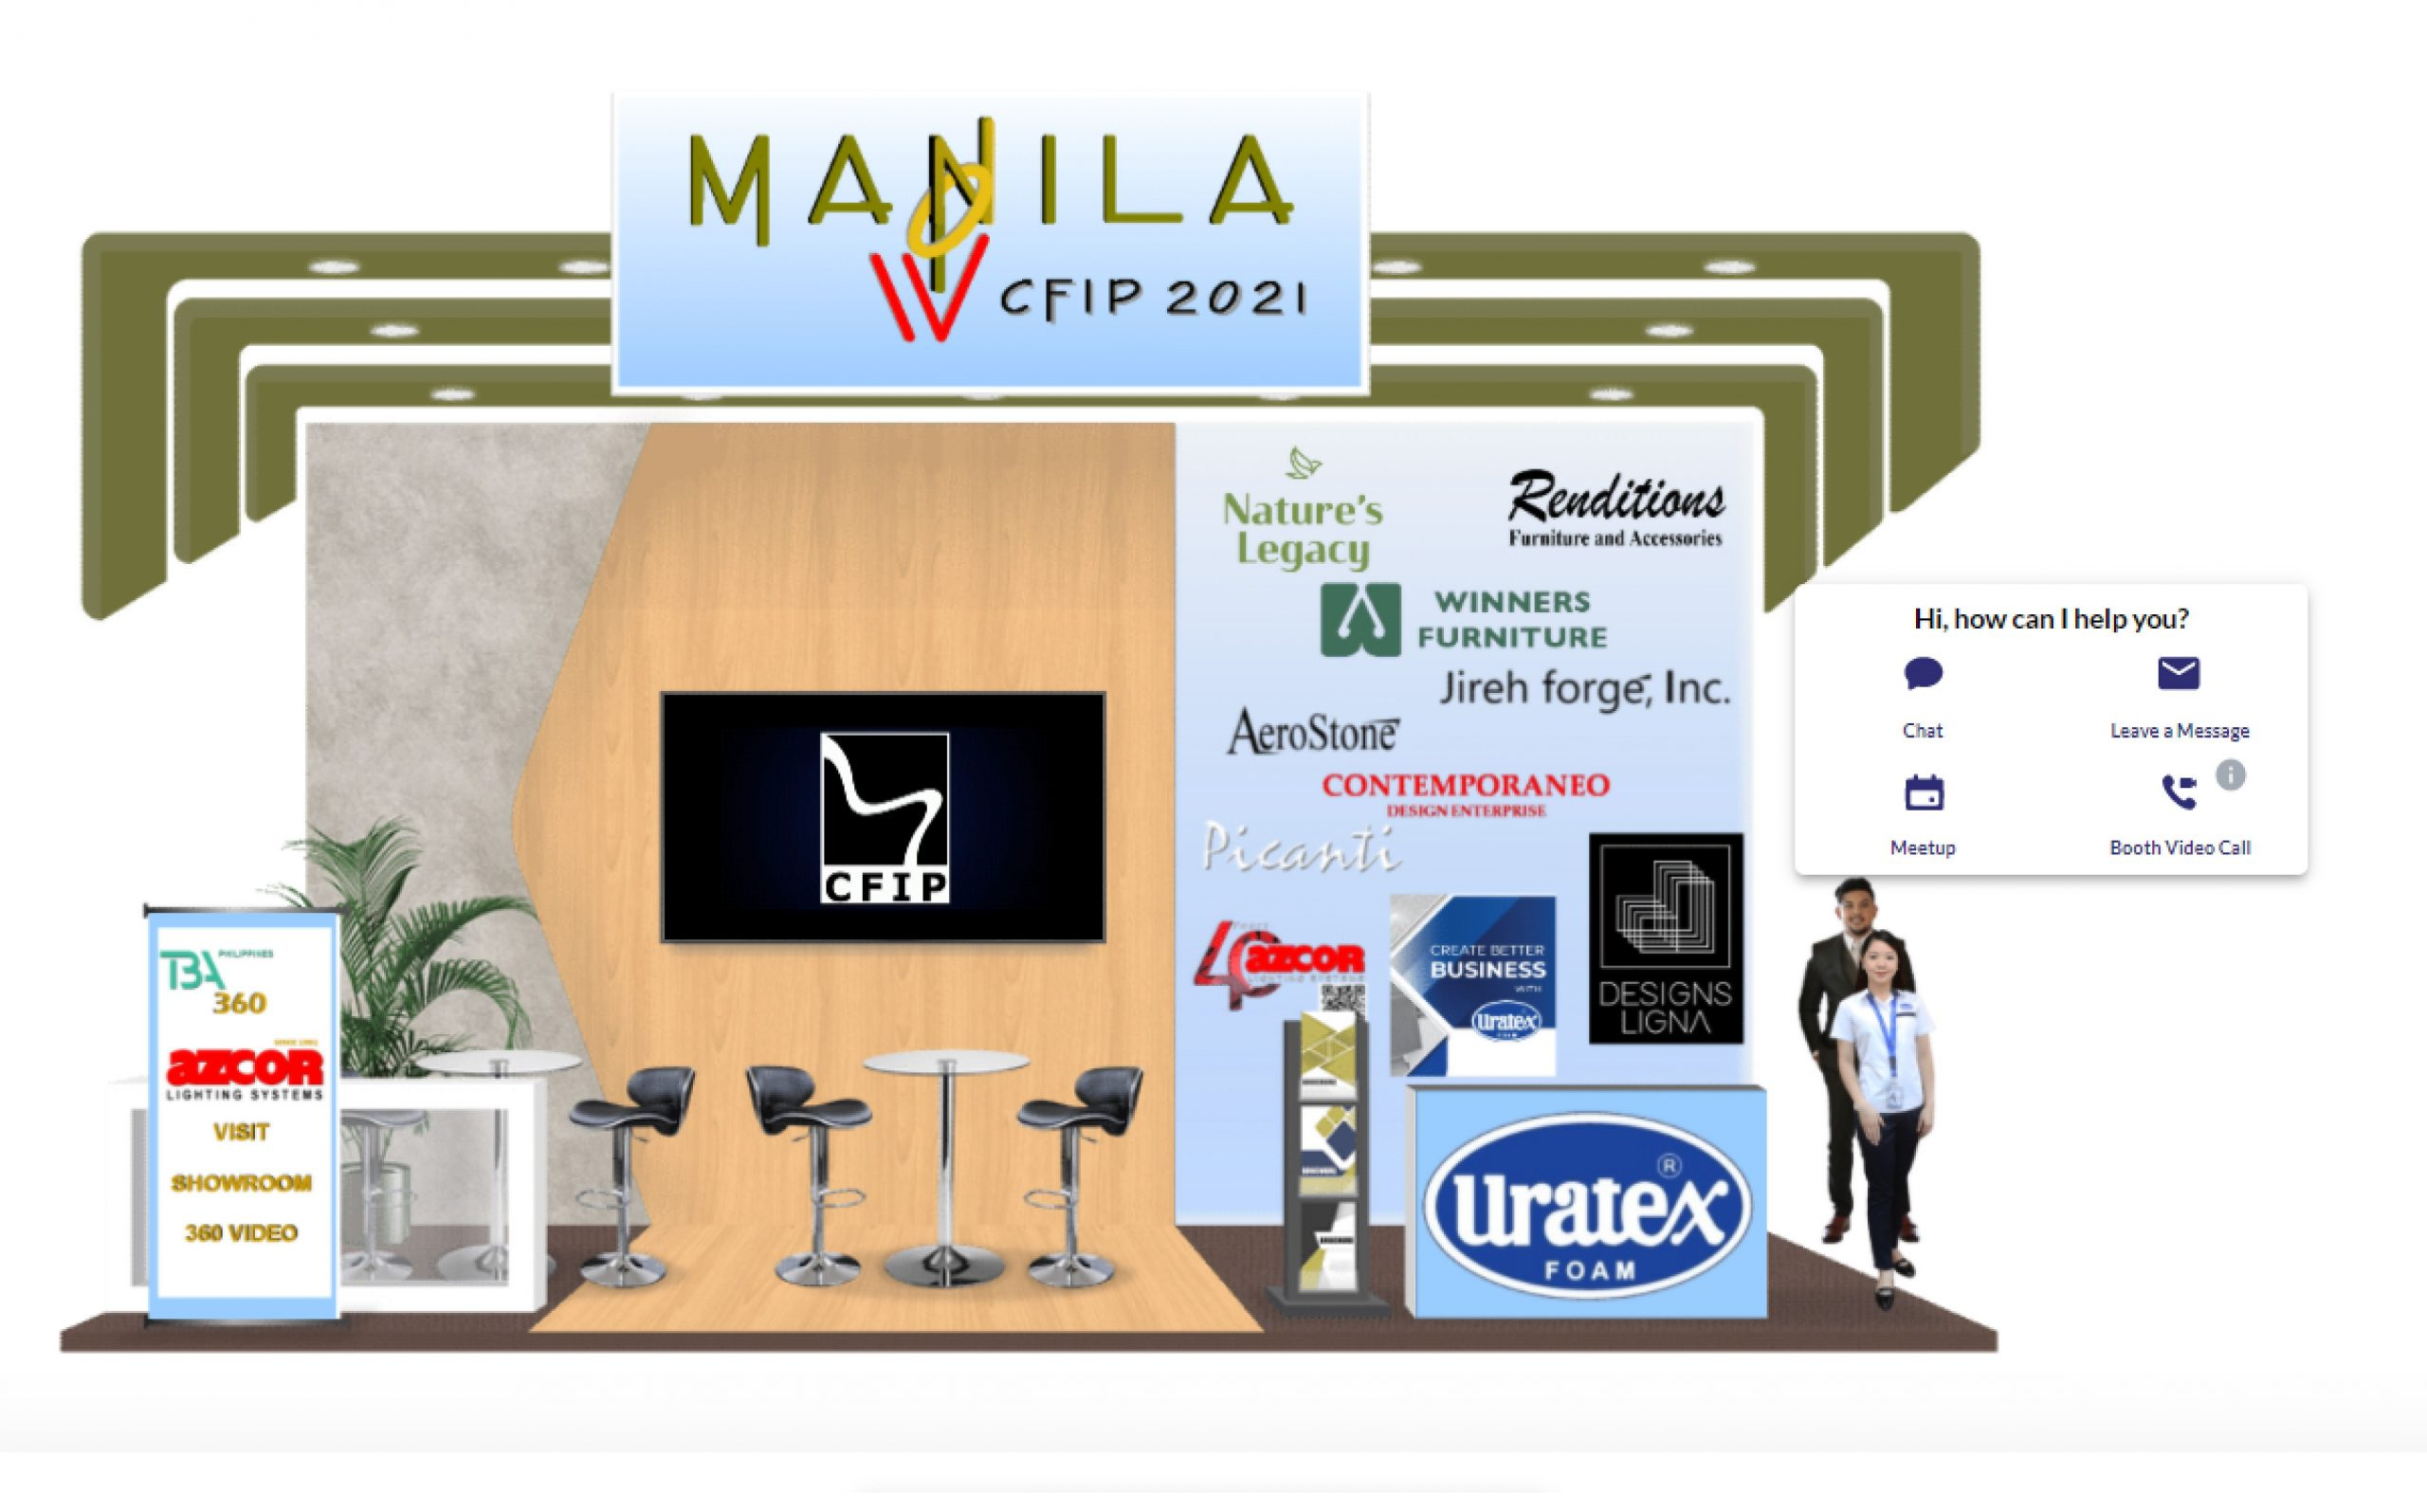 Manila Now x CFIP and Uratex for Business for the Very First PHILCONSTRUCT Virtual 2021